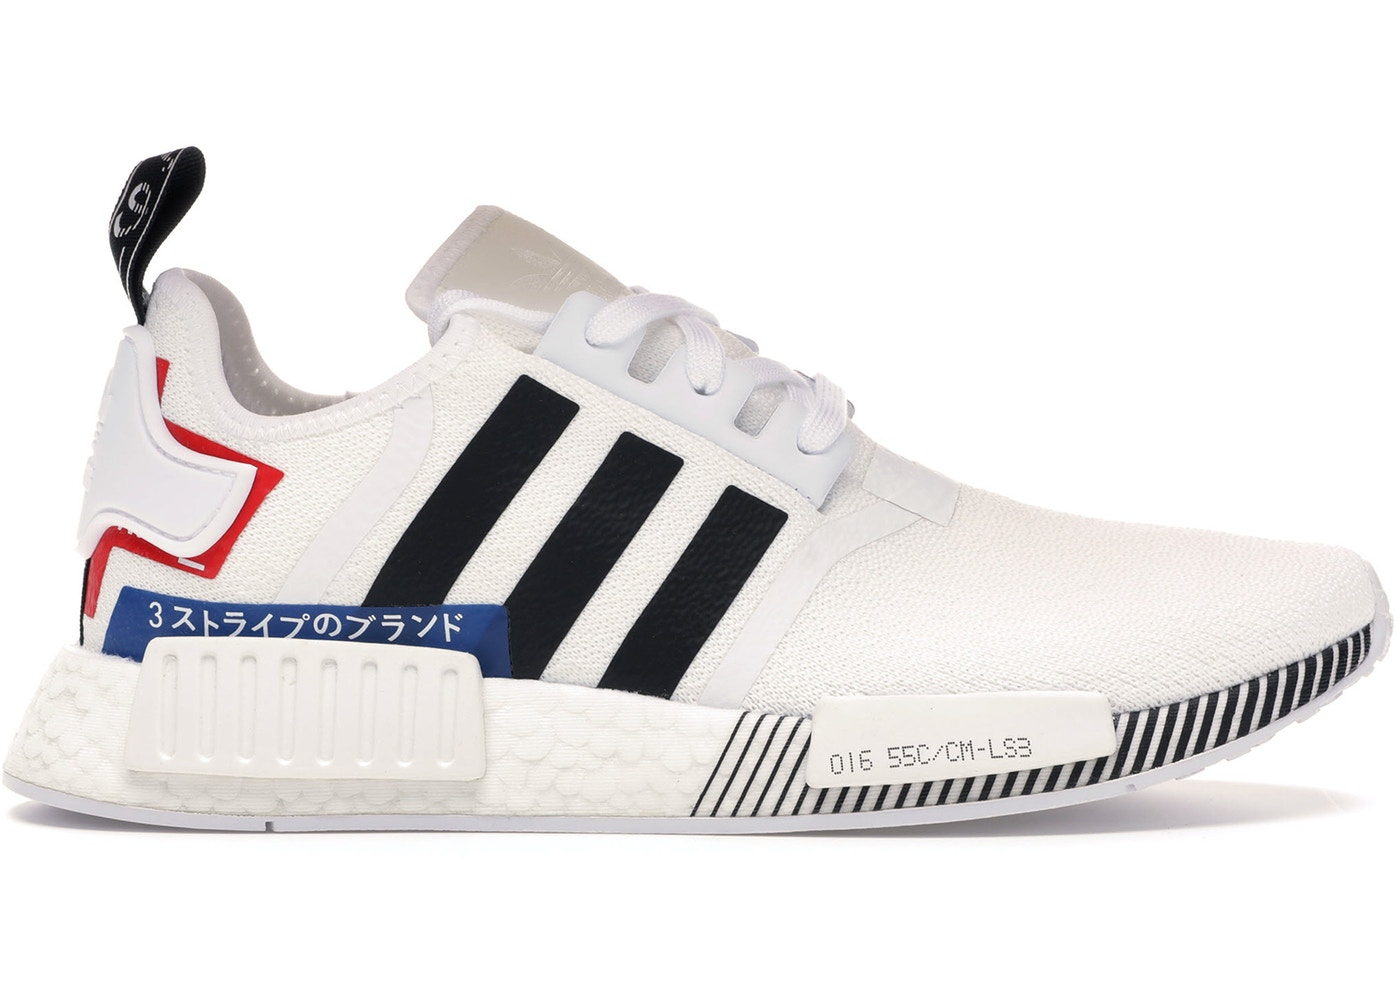 Adidas Nmd R1 Japan White 2019 Ef0753